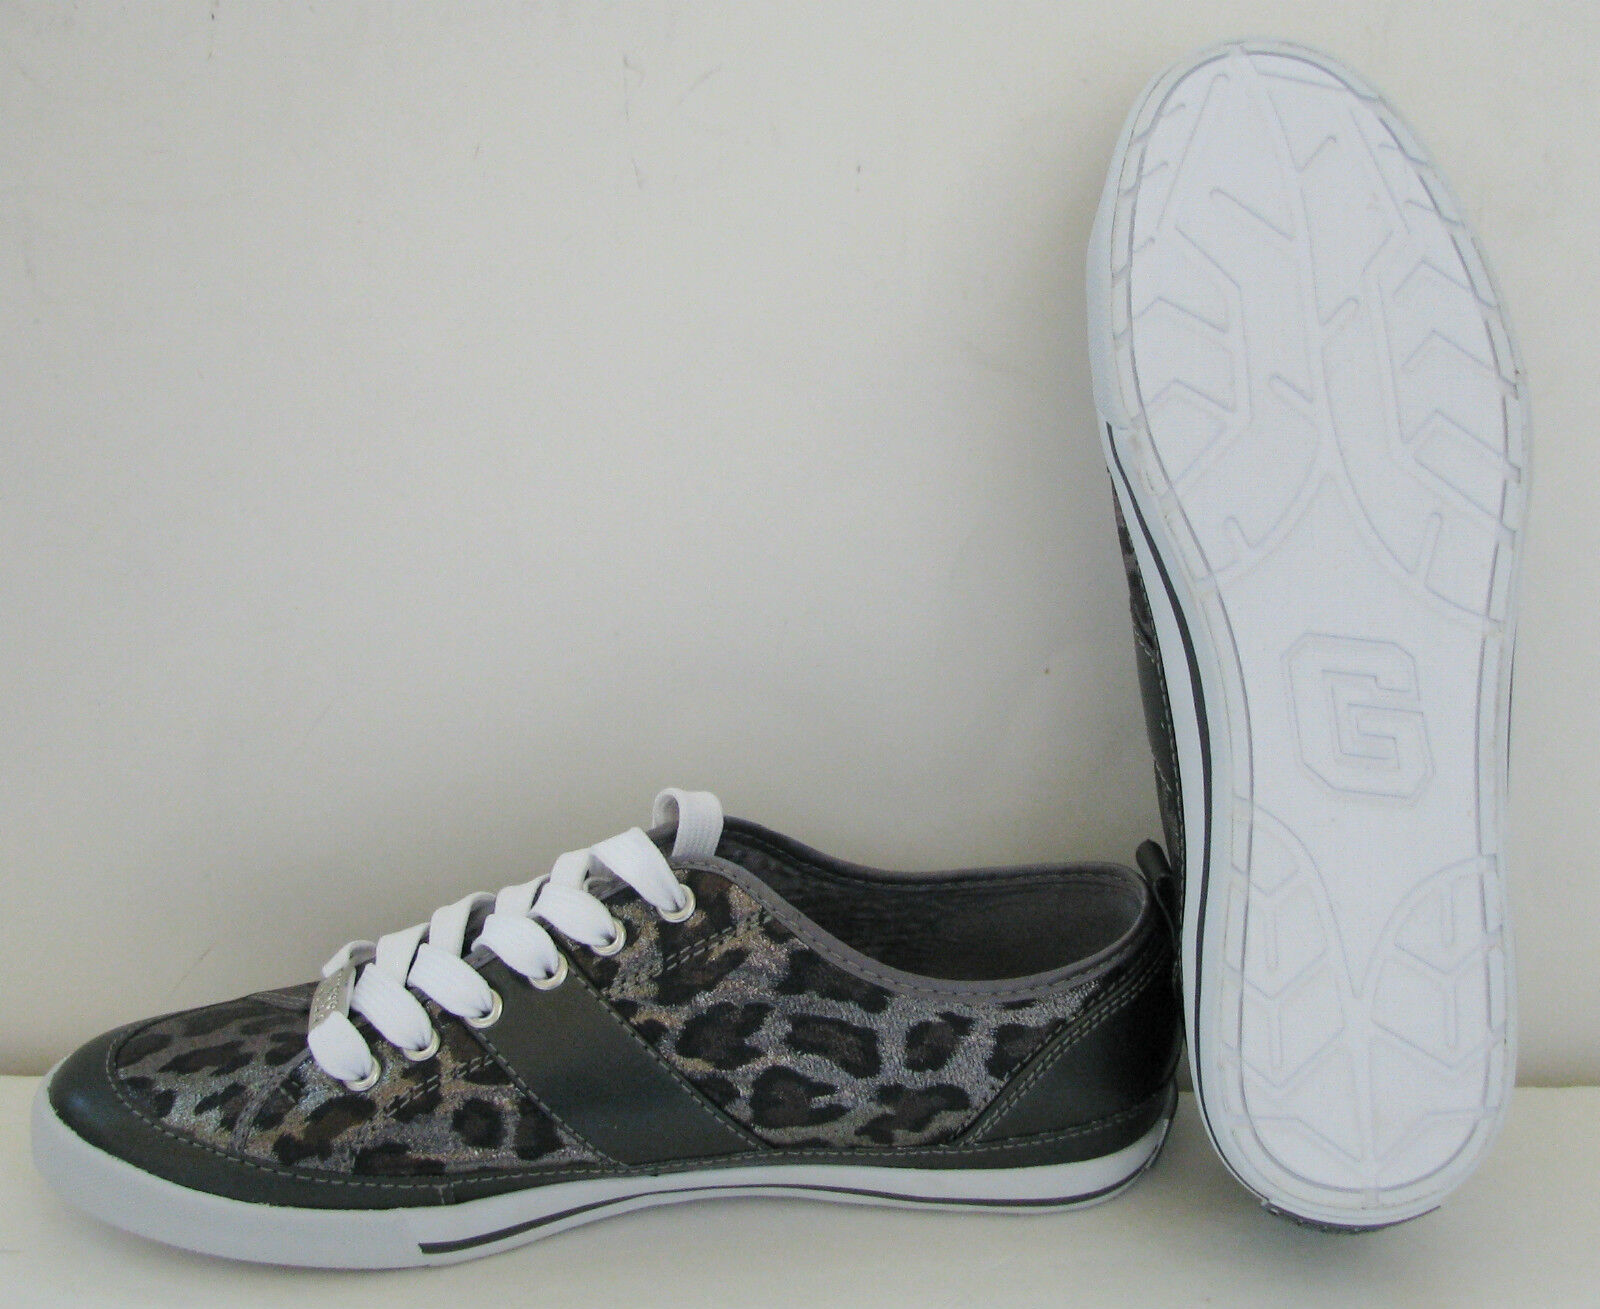 NEW-GUESS BRIAR METALLIC PEWTER SIZE LEOPARD PRINT+SILVER SPORT Schuhe SIZE PEWTER 7.5-9+BOX 05f8fb